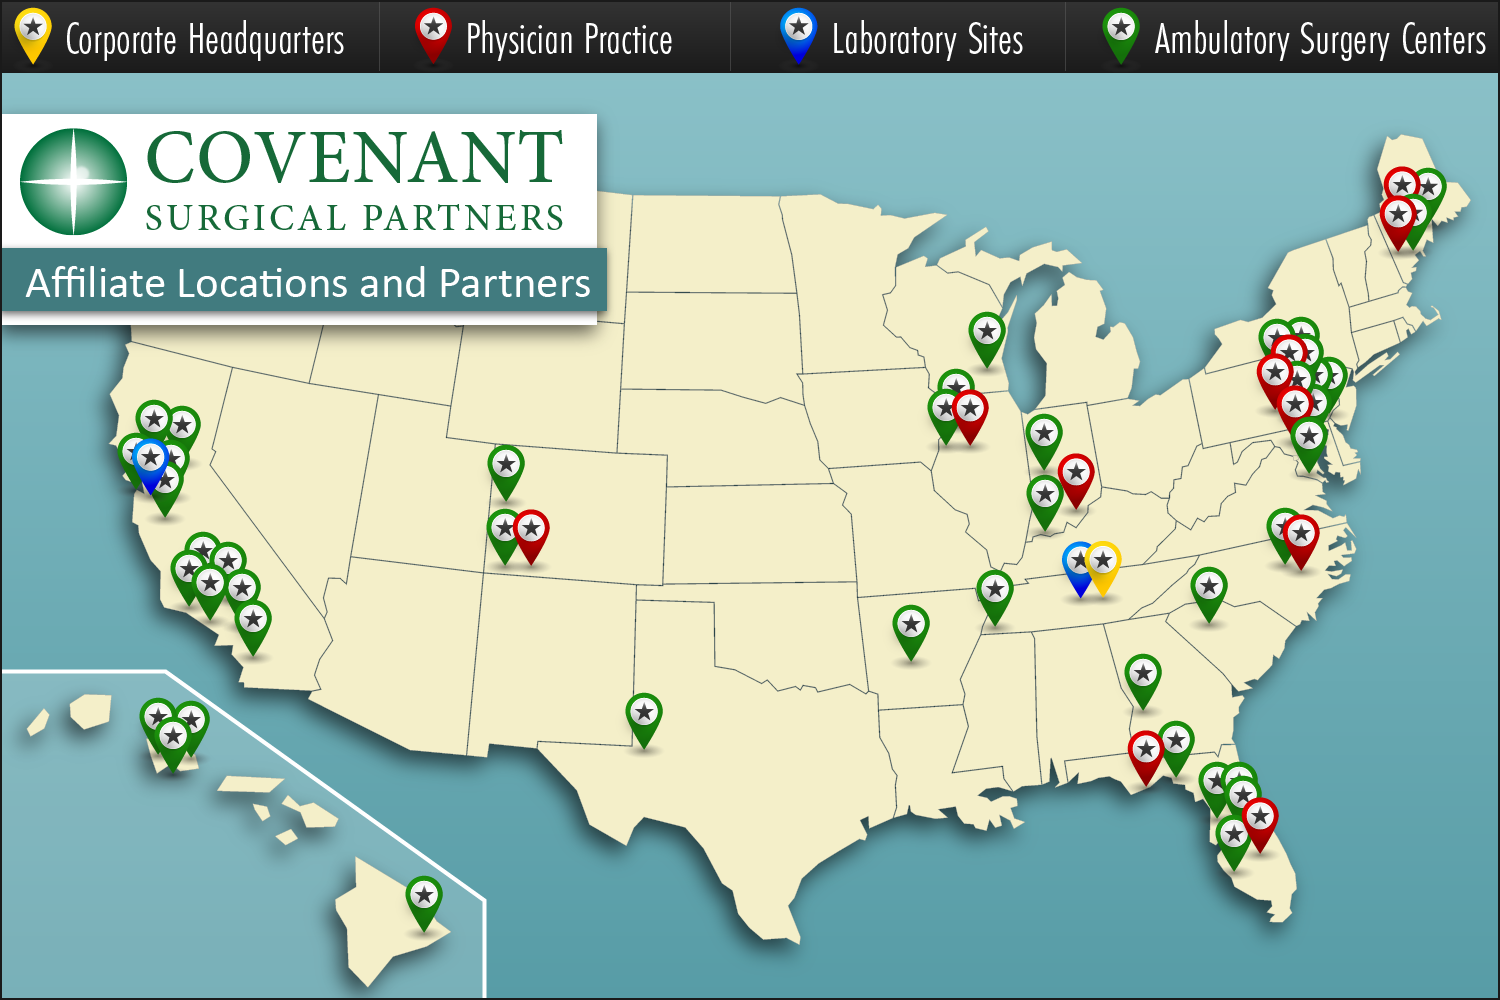 Covenant Surgical Partners - Affiliate and Partner Locations